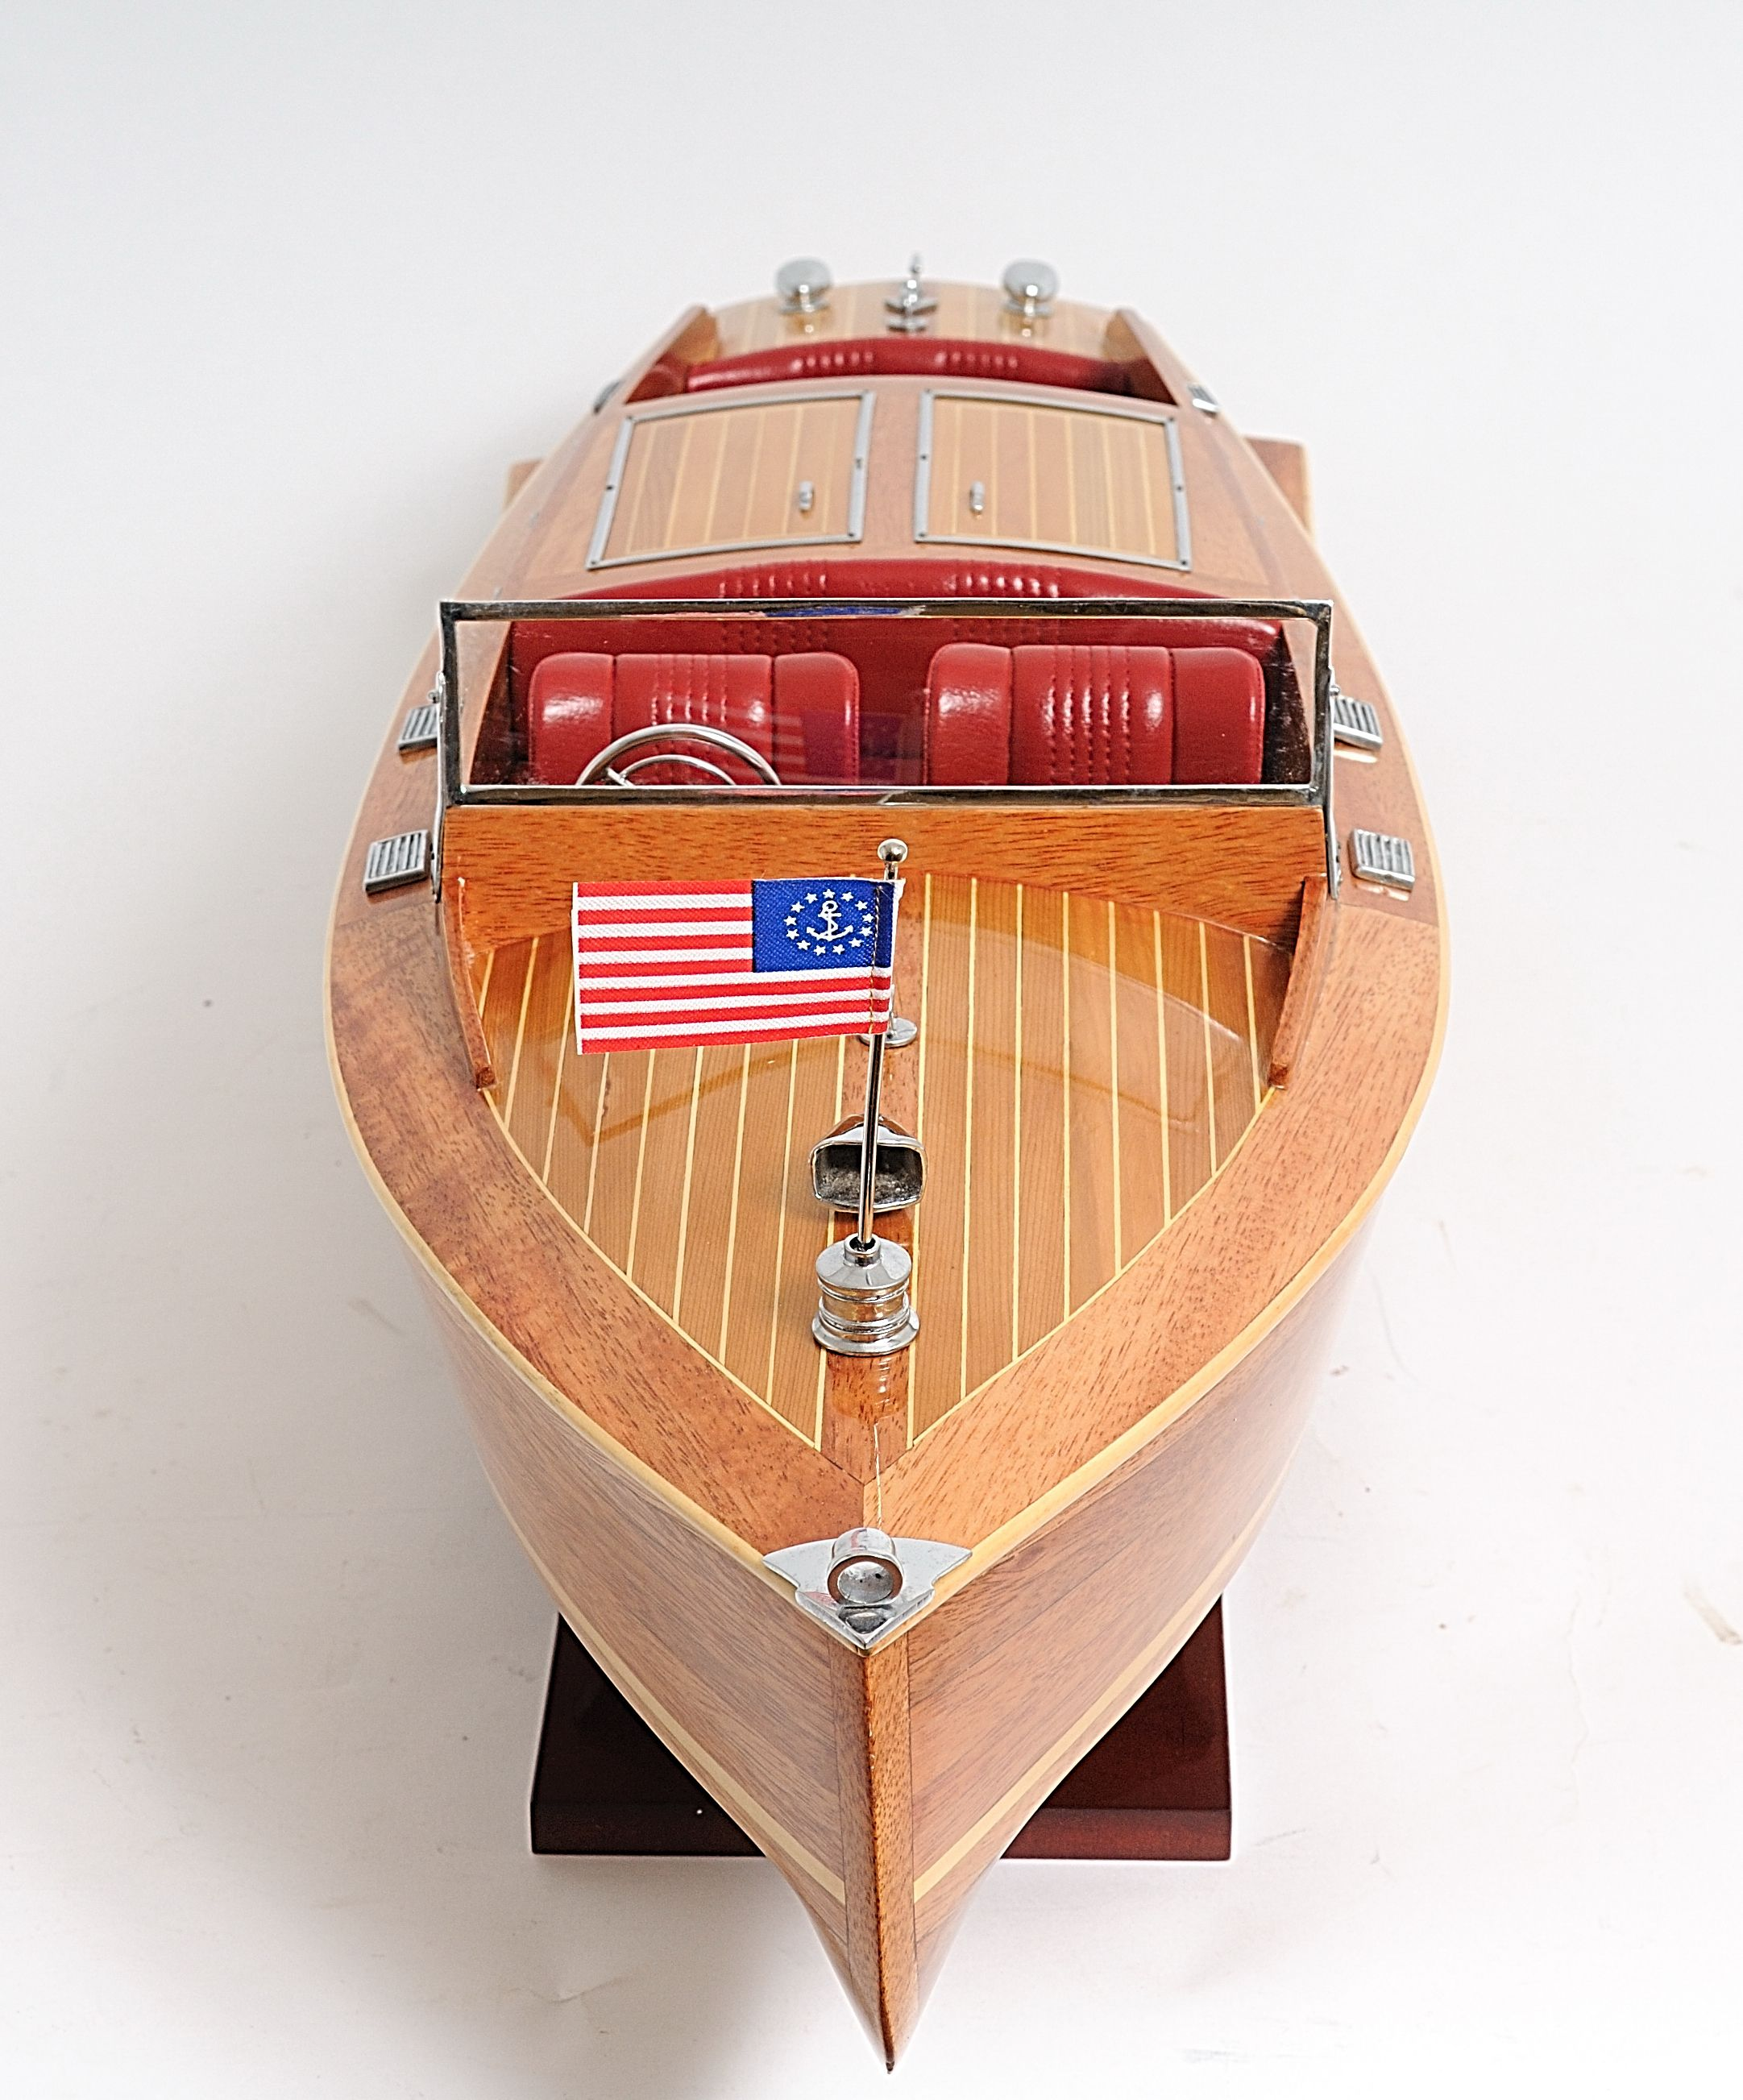 2291-13243-Runabout-Wooden-Model-Ship